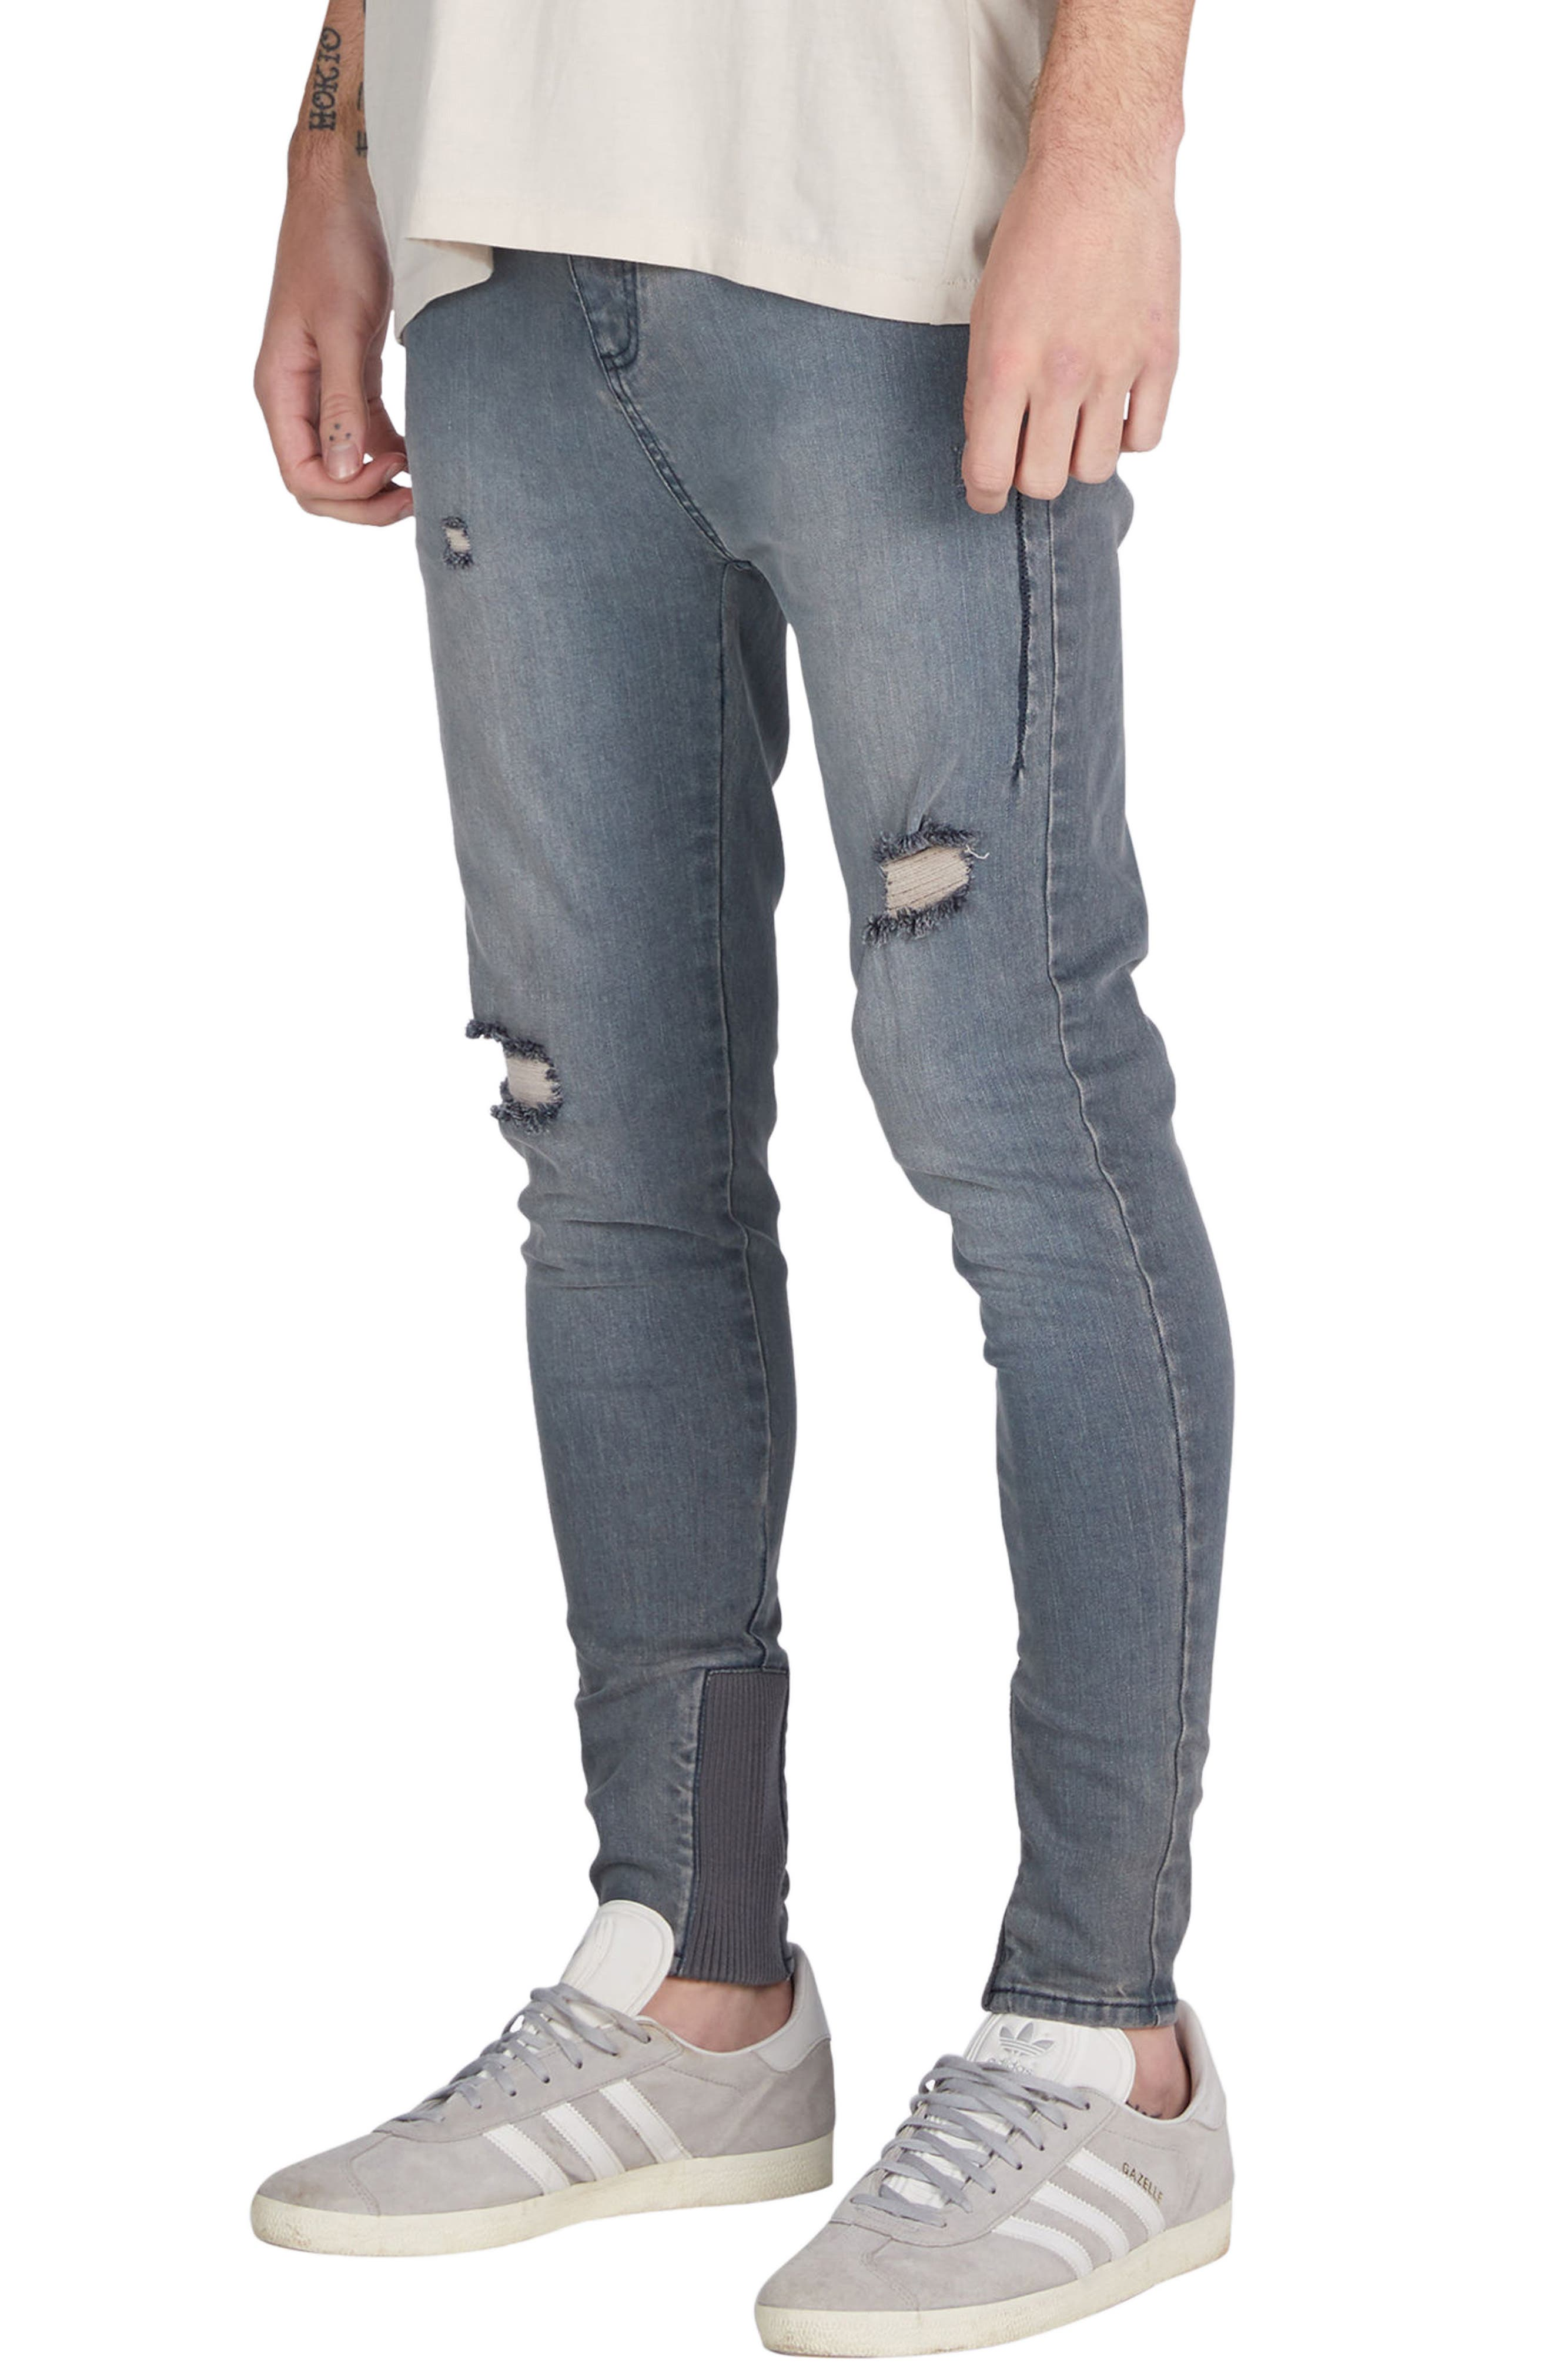 Sharpshot Slouchy Skinny Fit Denim Pants,                             Alternate thumbnail 4, color,                             420